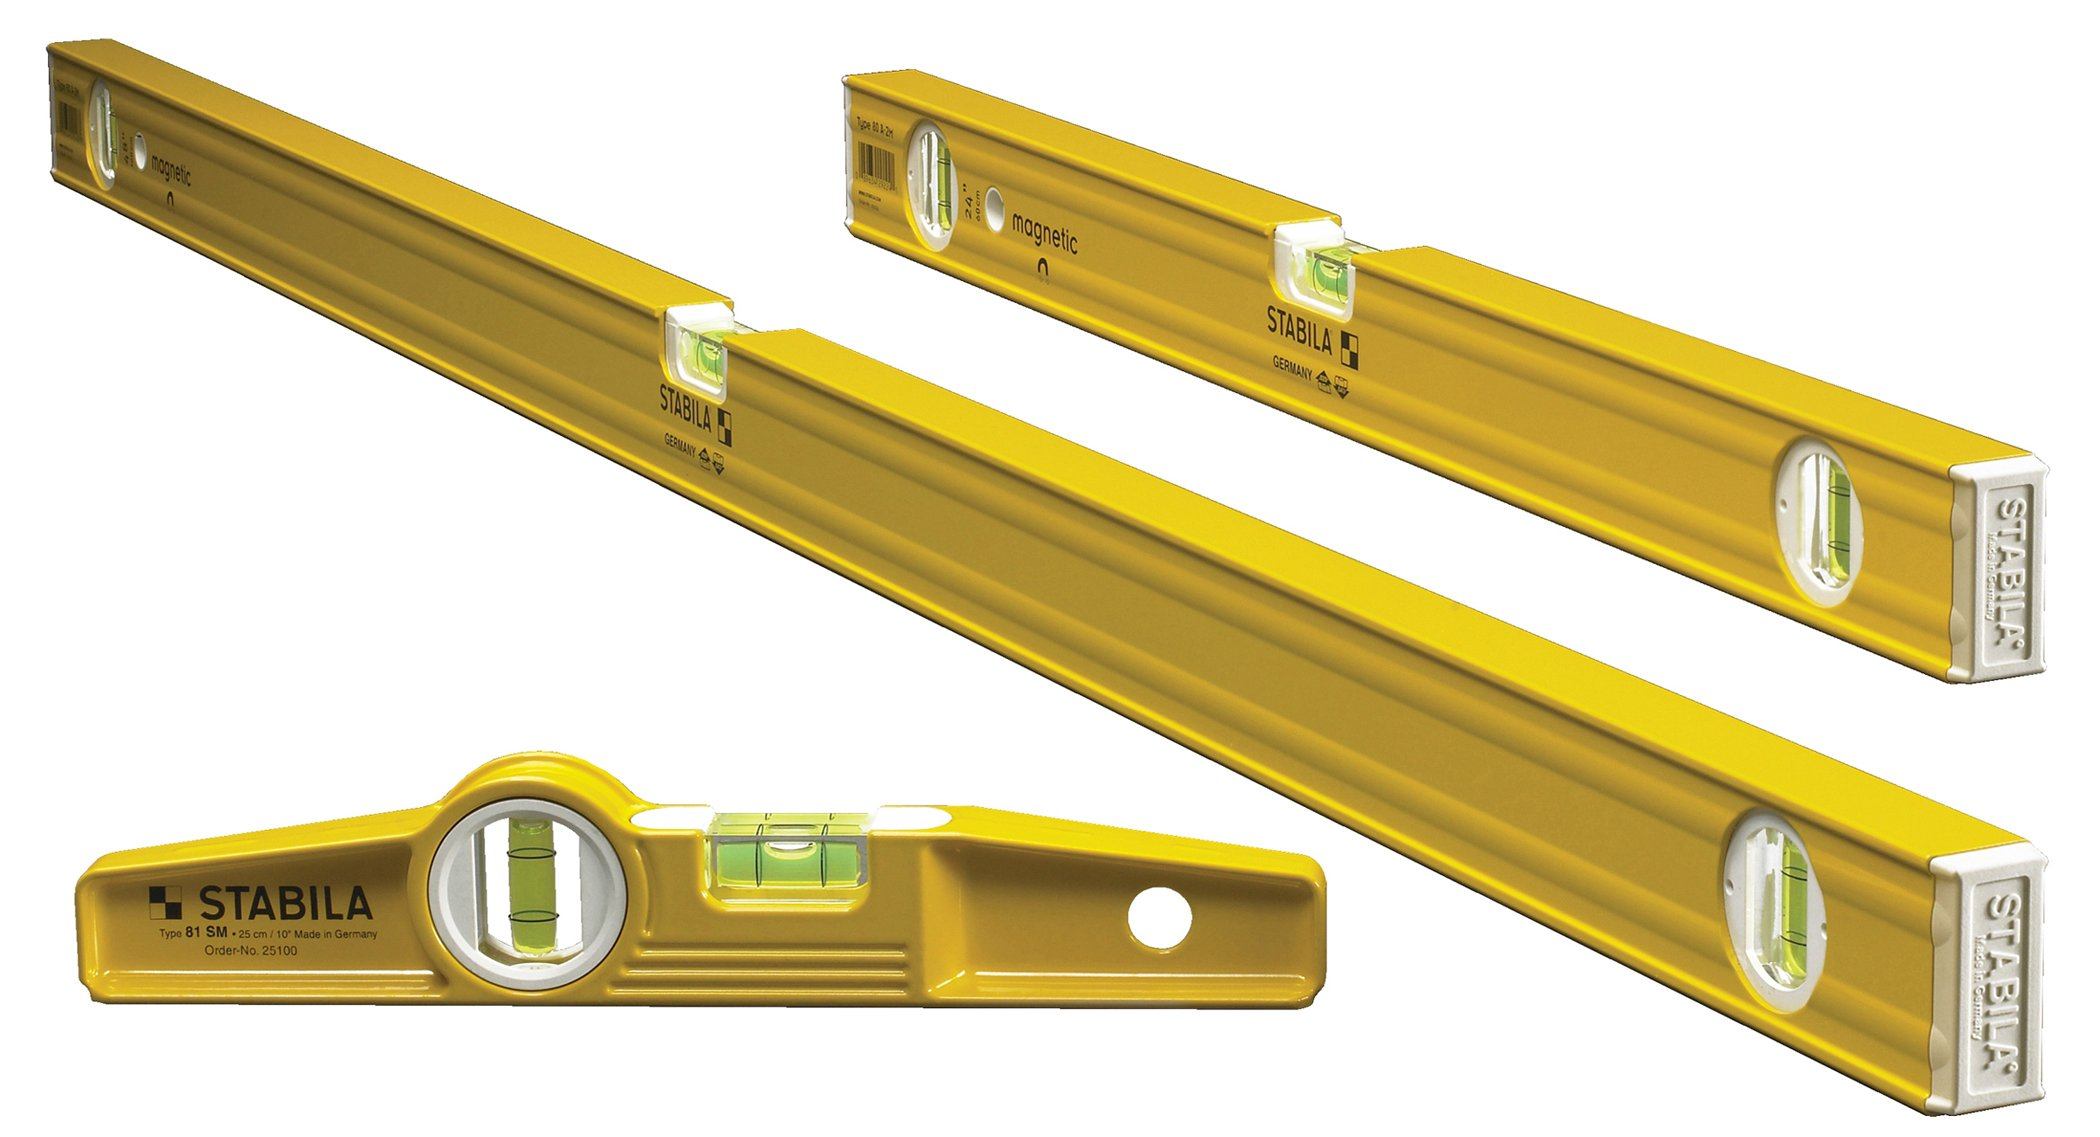 Stabila 29924 - 3 Level Magnetic Pro-Set includes 48'', 24'' and Die-Cast Torpedo